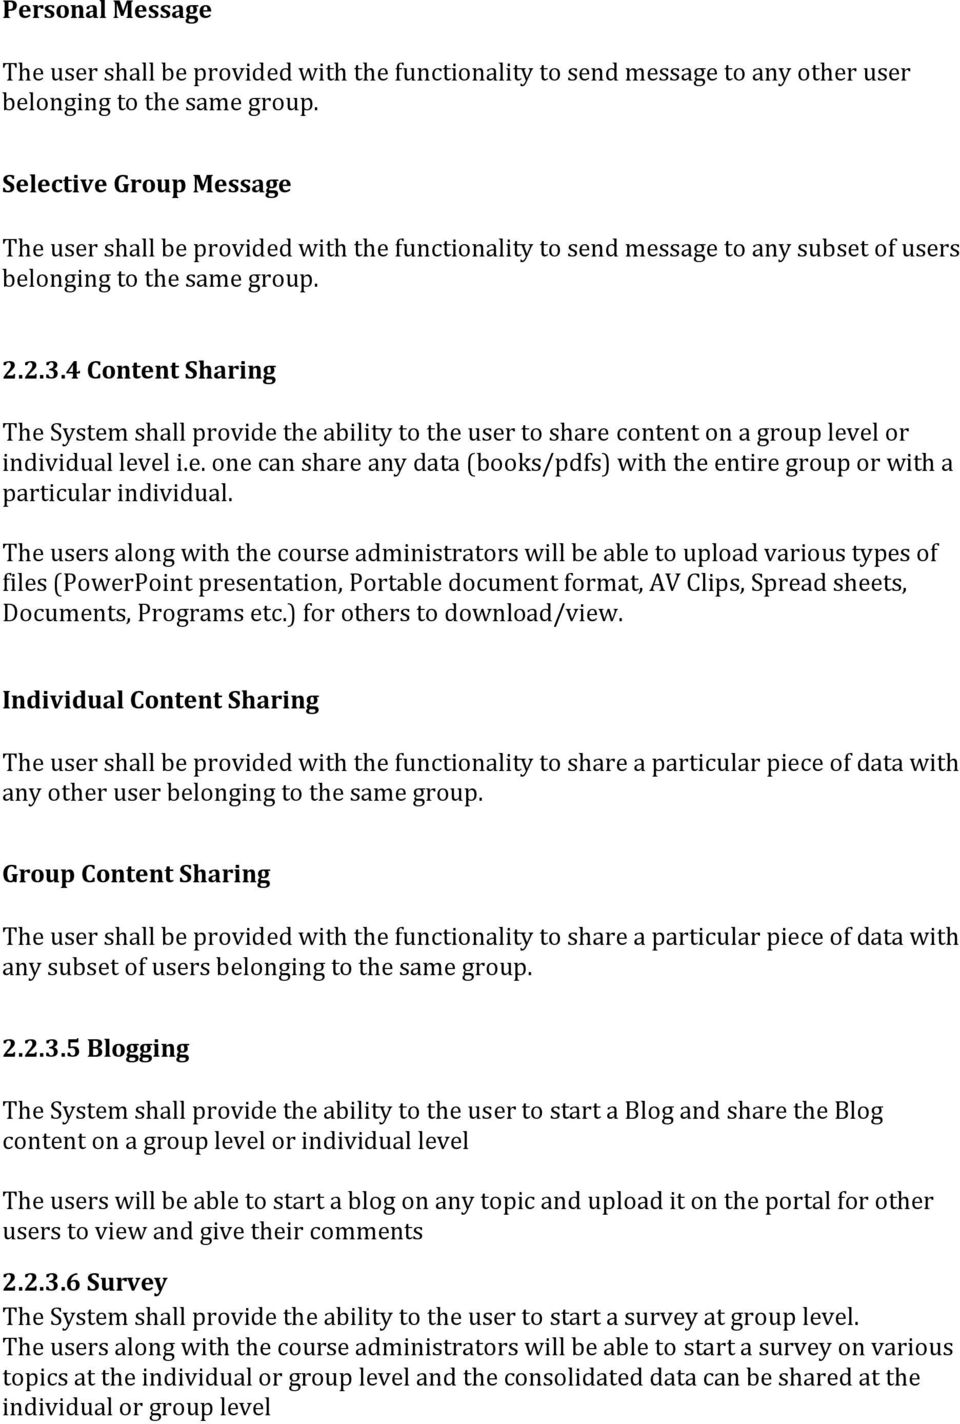 4 Content Sharing The System shall provide the ability to the user to share content on a group level or individual level i.e. one can share any data (books/pdfs) with the entire group or with a particular individual.